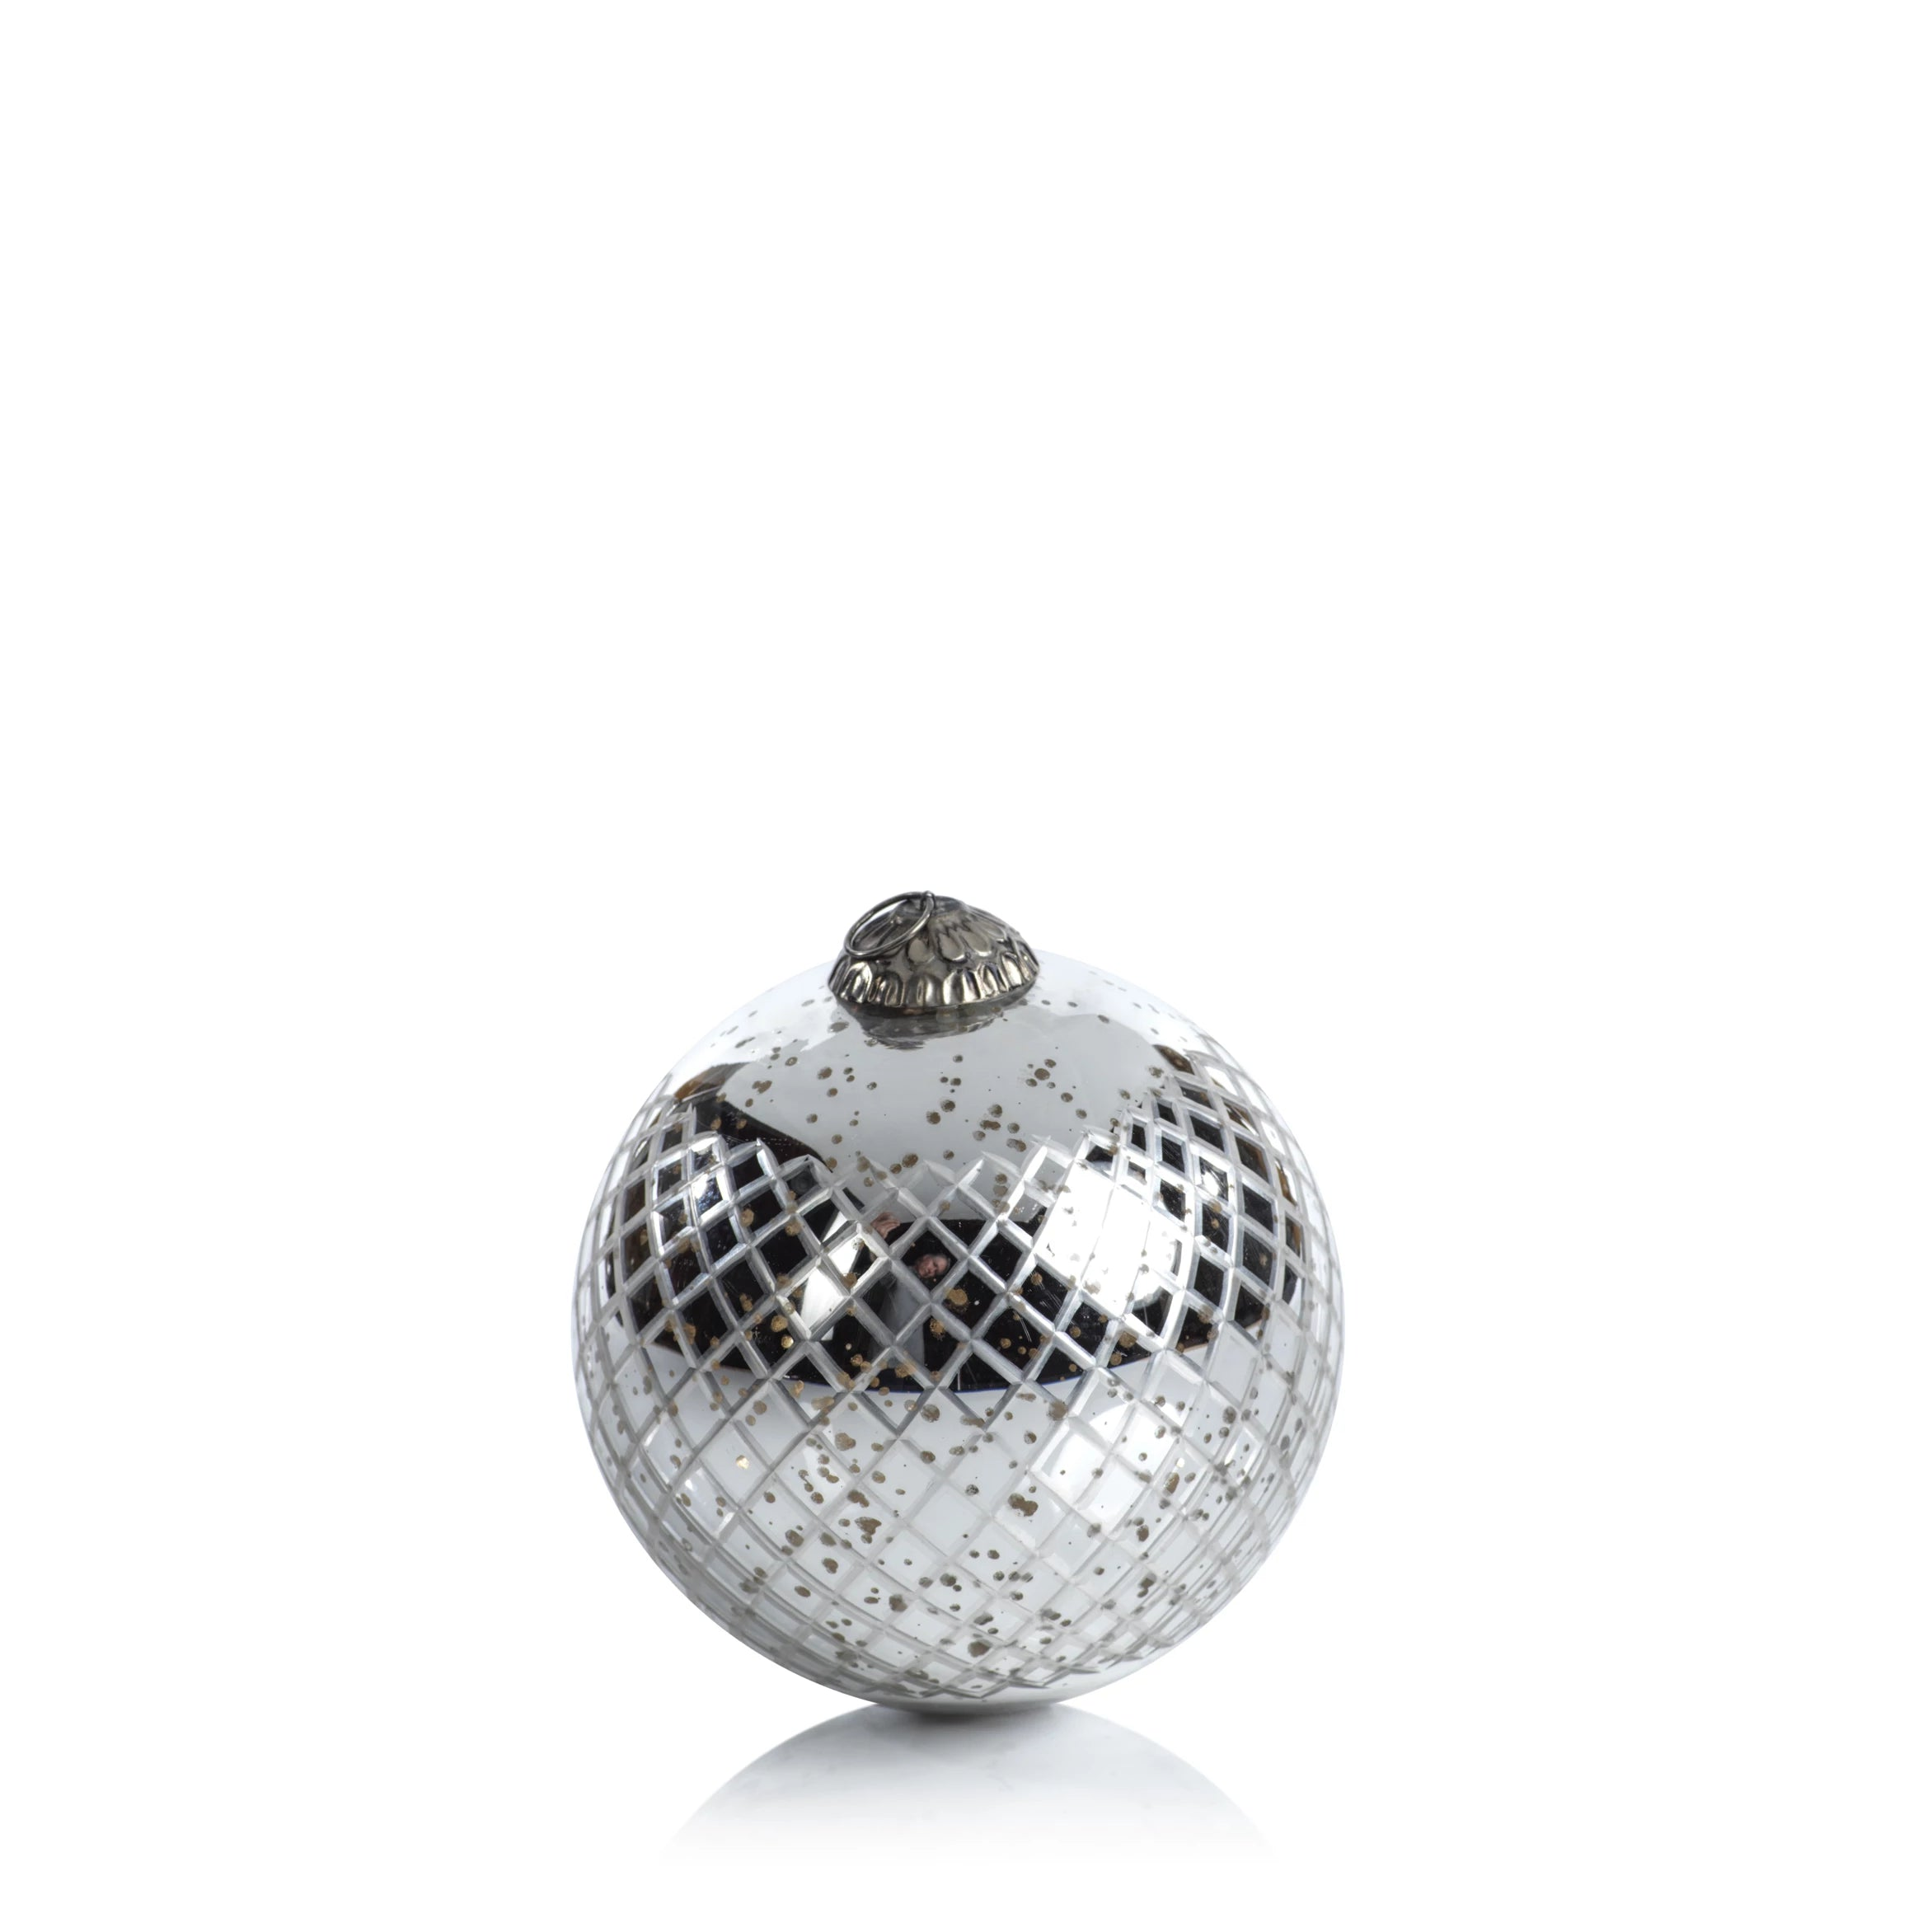 Diamond Cut Ball Ornament - Antique Silver - CARLYLE AVENUE